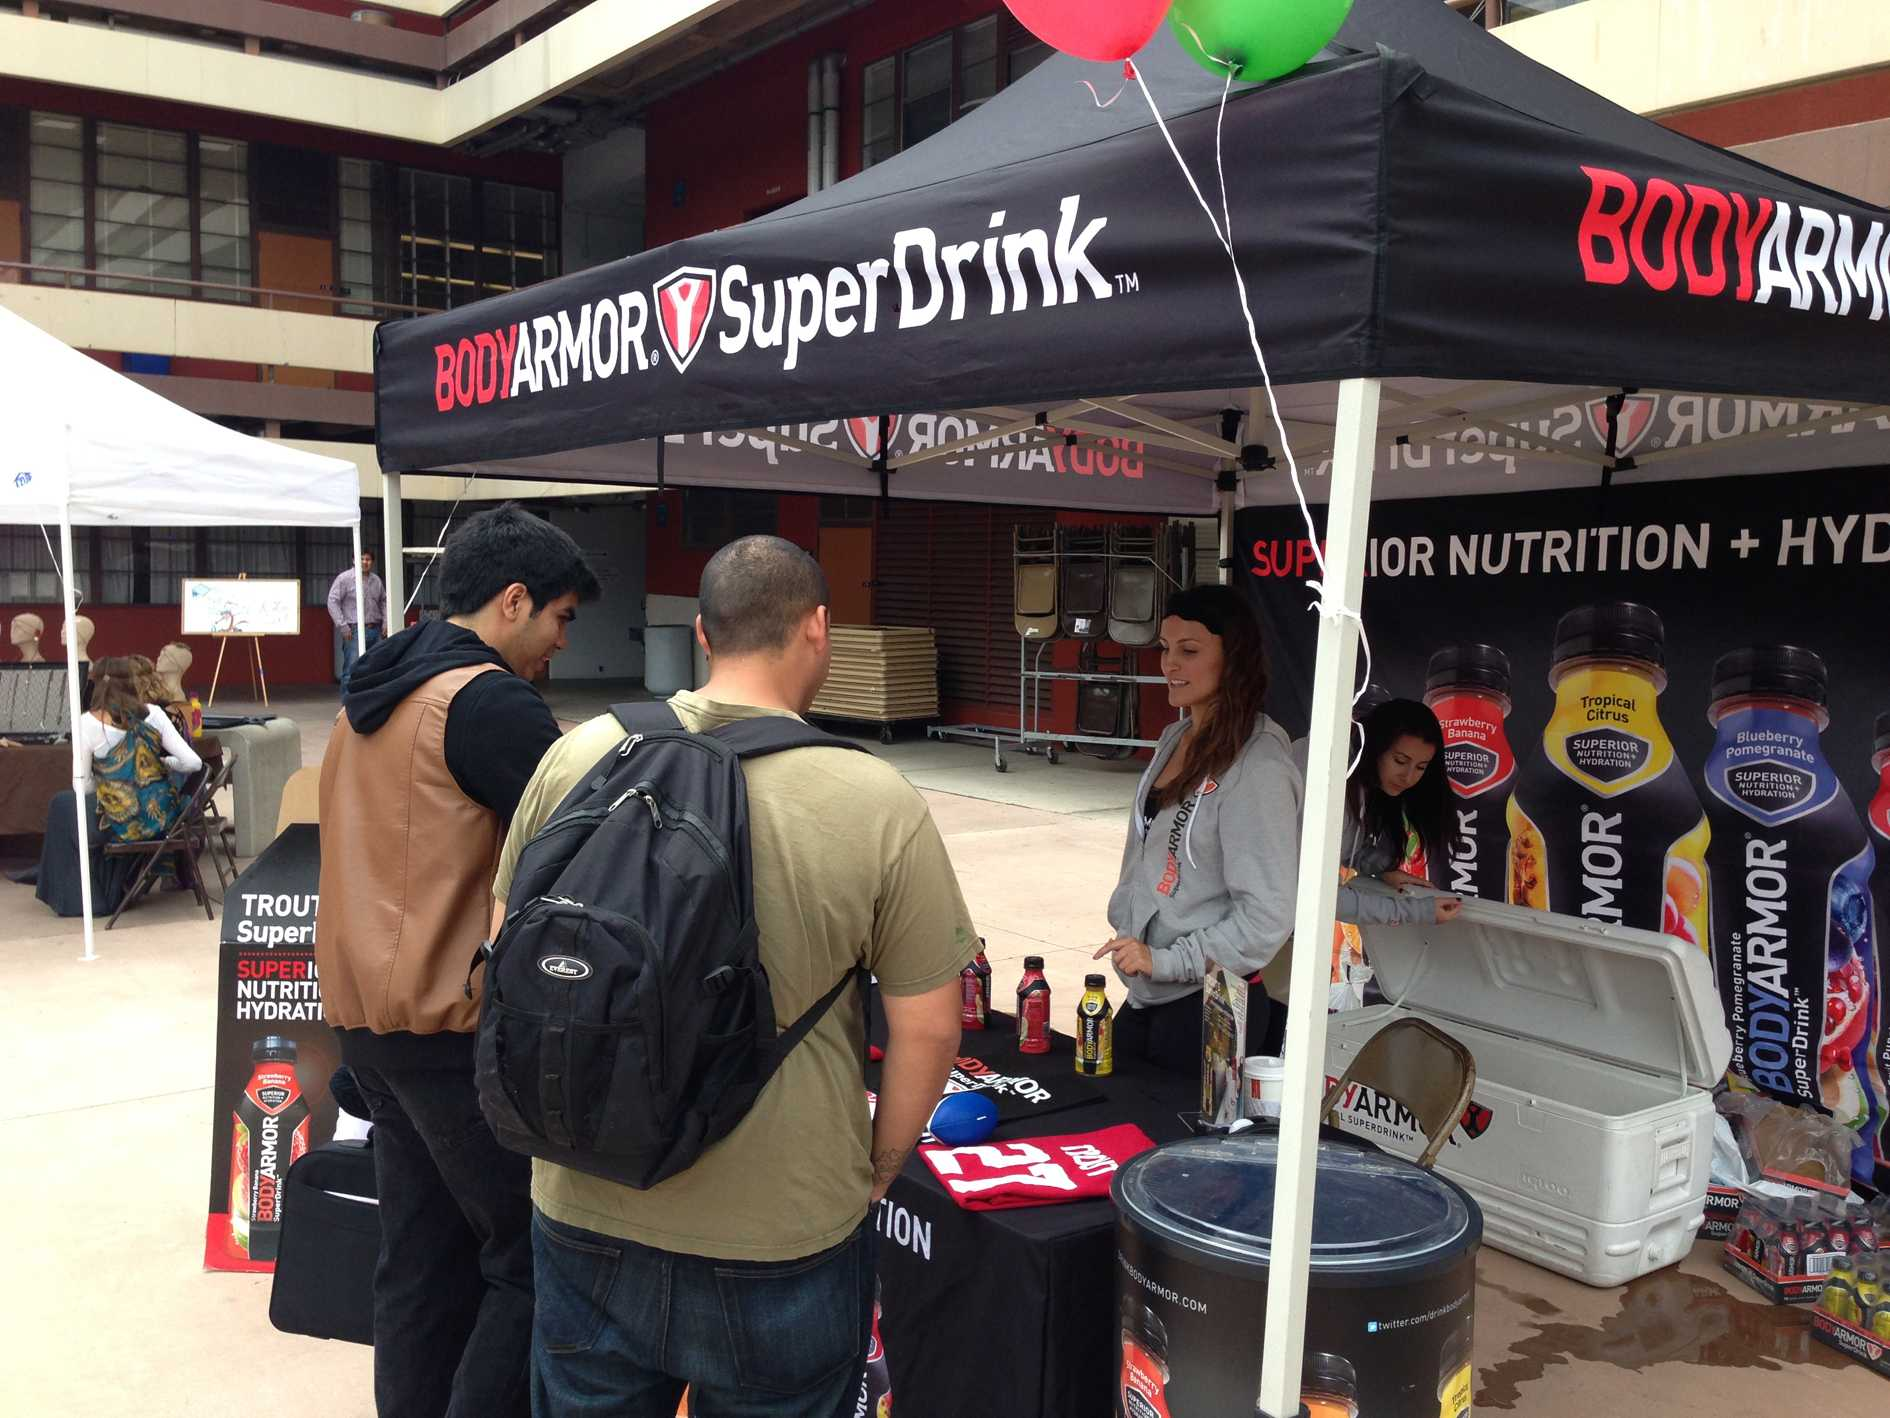 Students receive free energy drinks at the Body Armor Super Drink stand on April 30. Paul Smoot, City Times